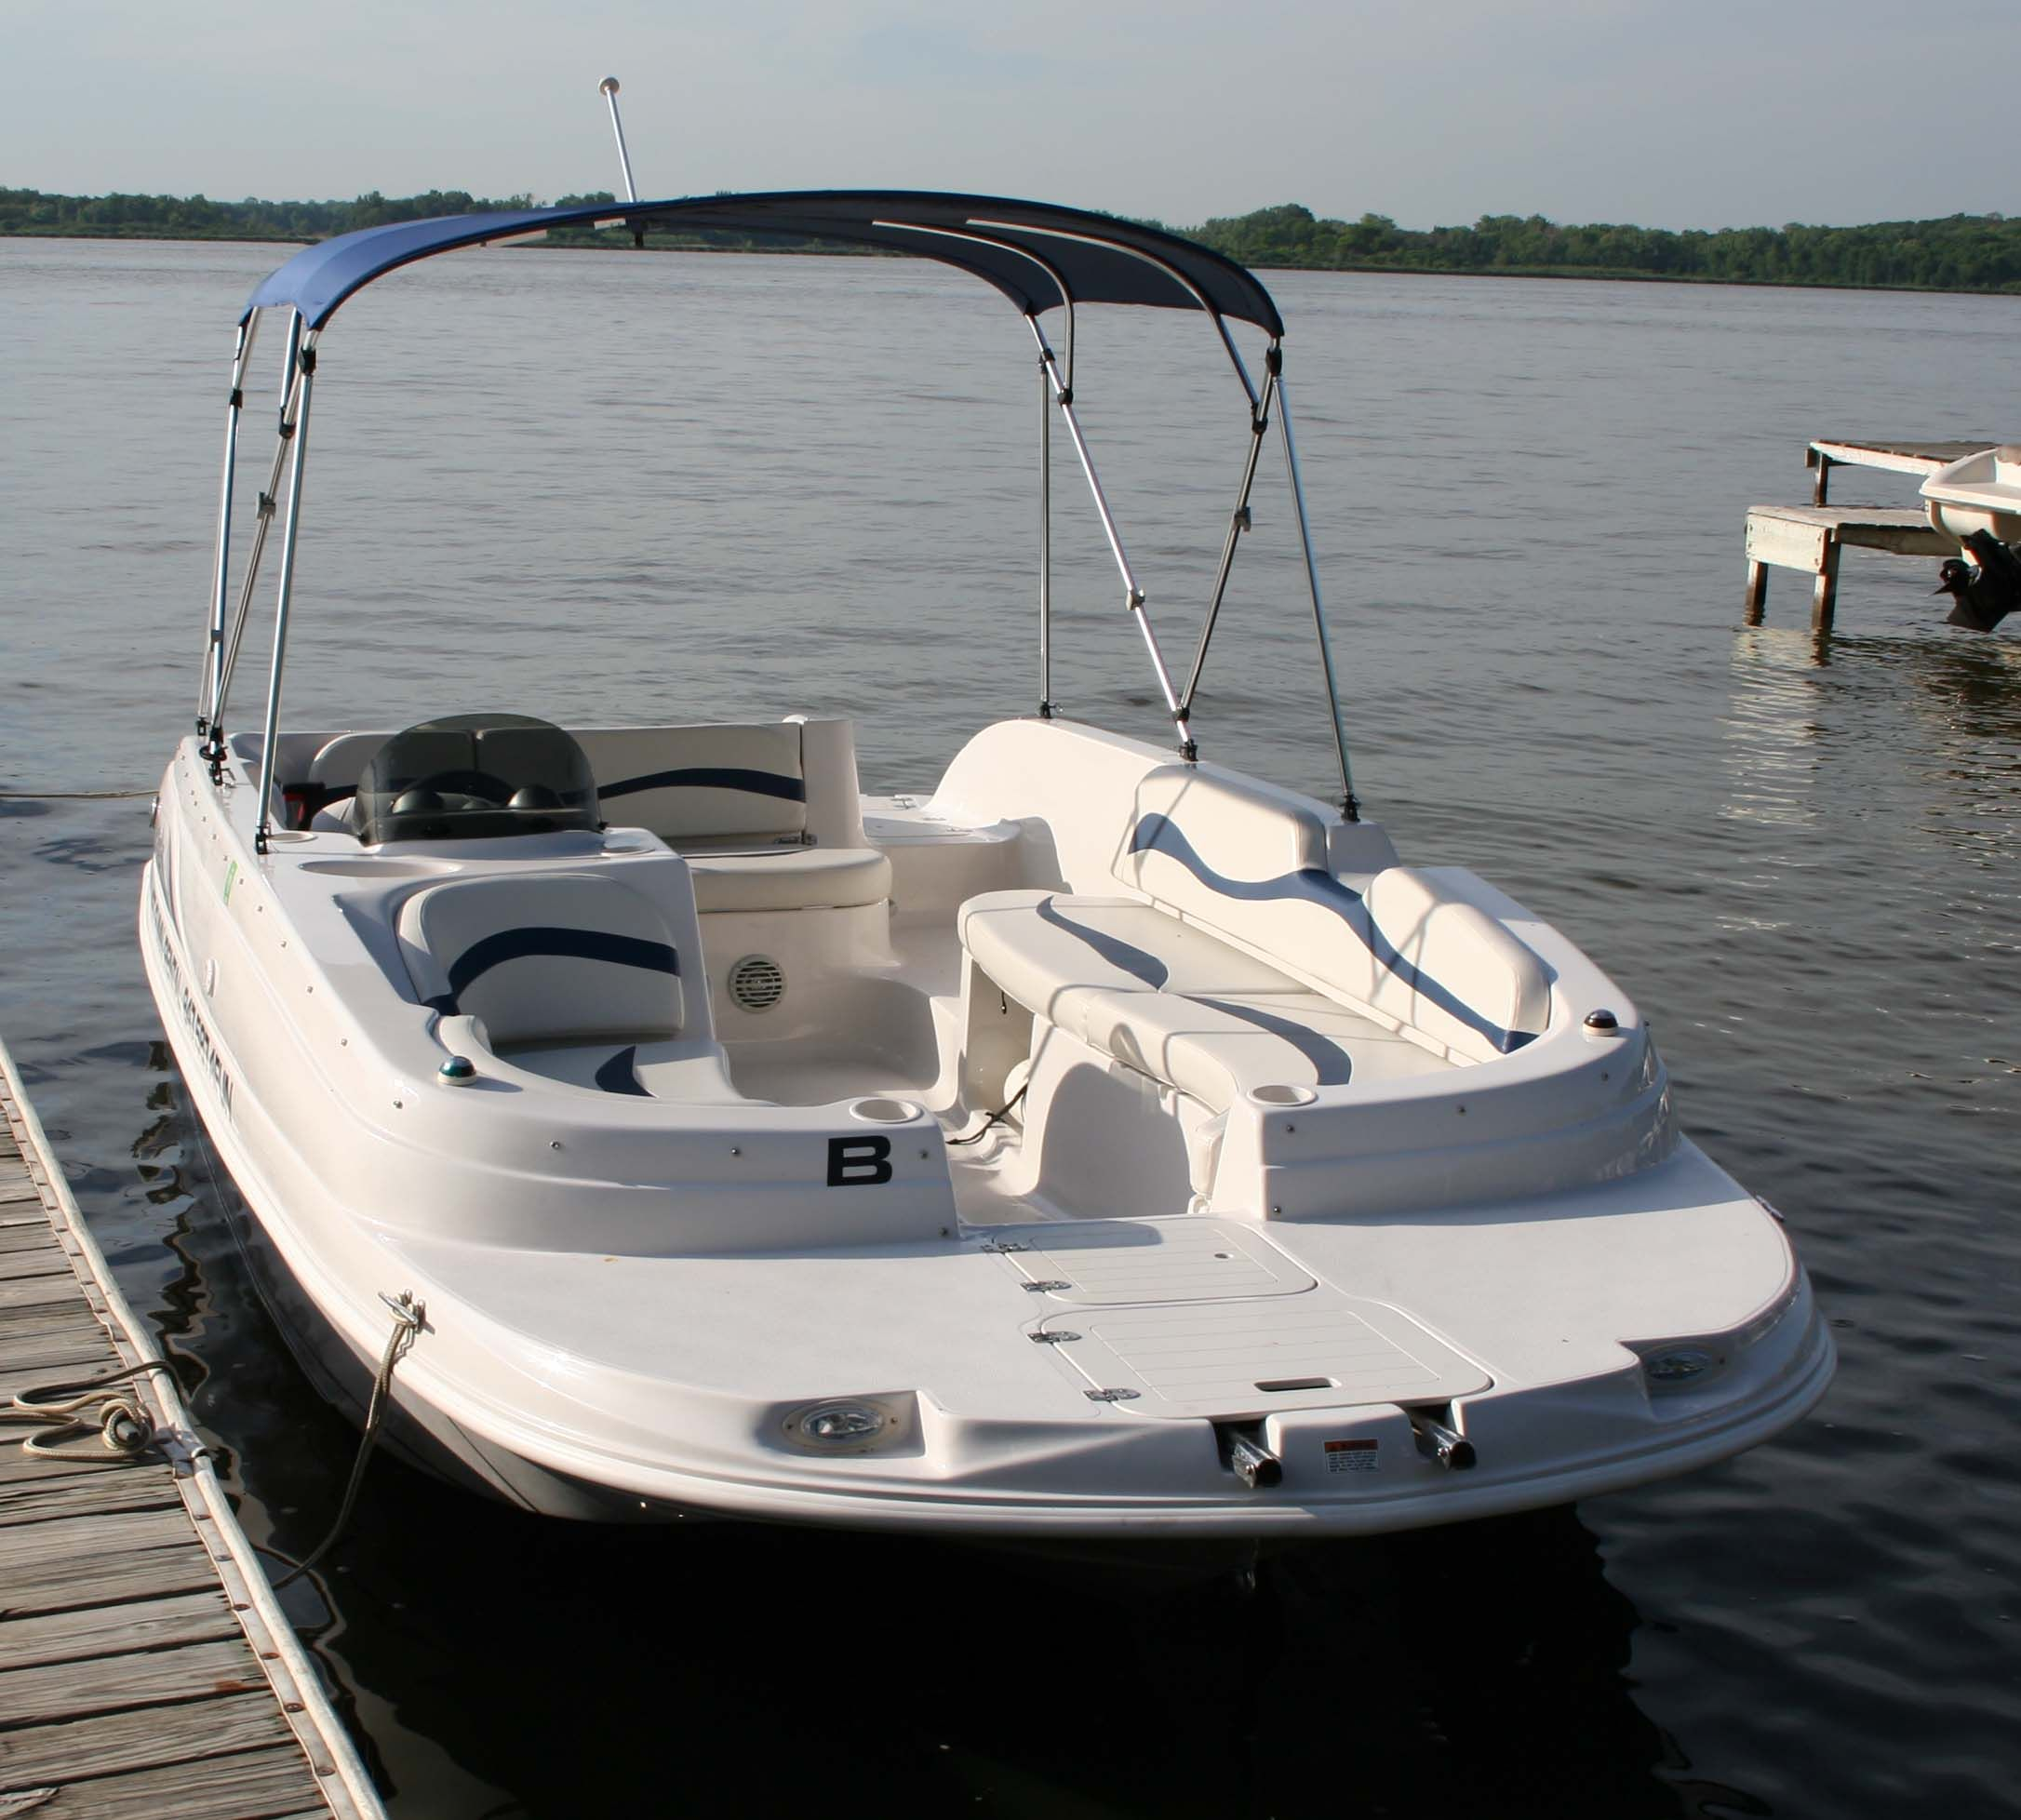 A Nice Boat For Family And Friends To Go Out Fishing Or Swimming And Just Hang Out Boat Swimming Hanging Out